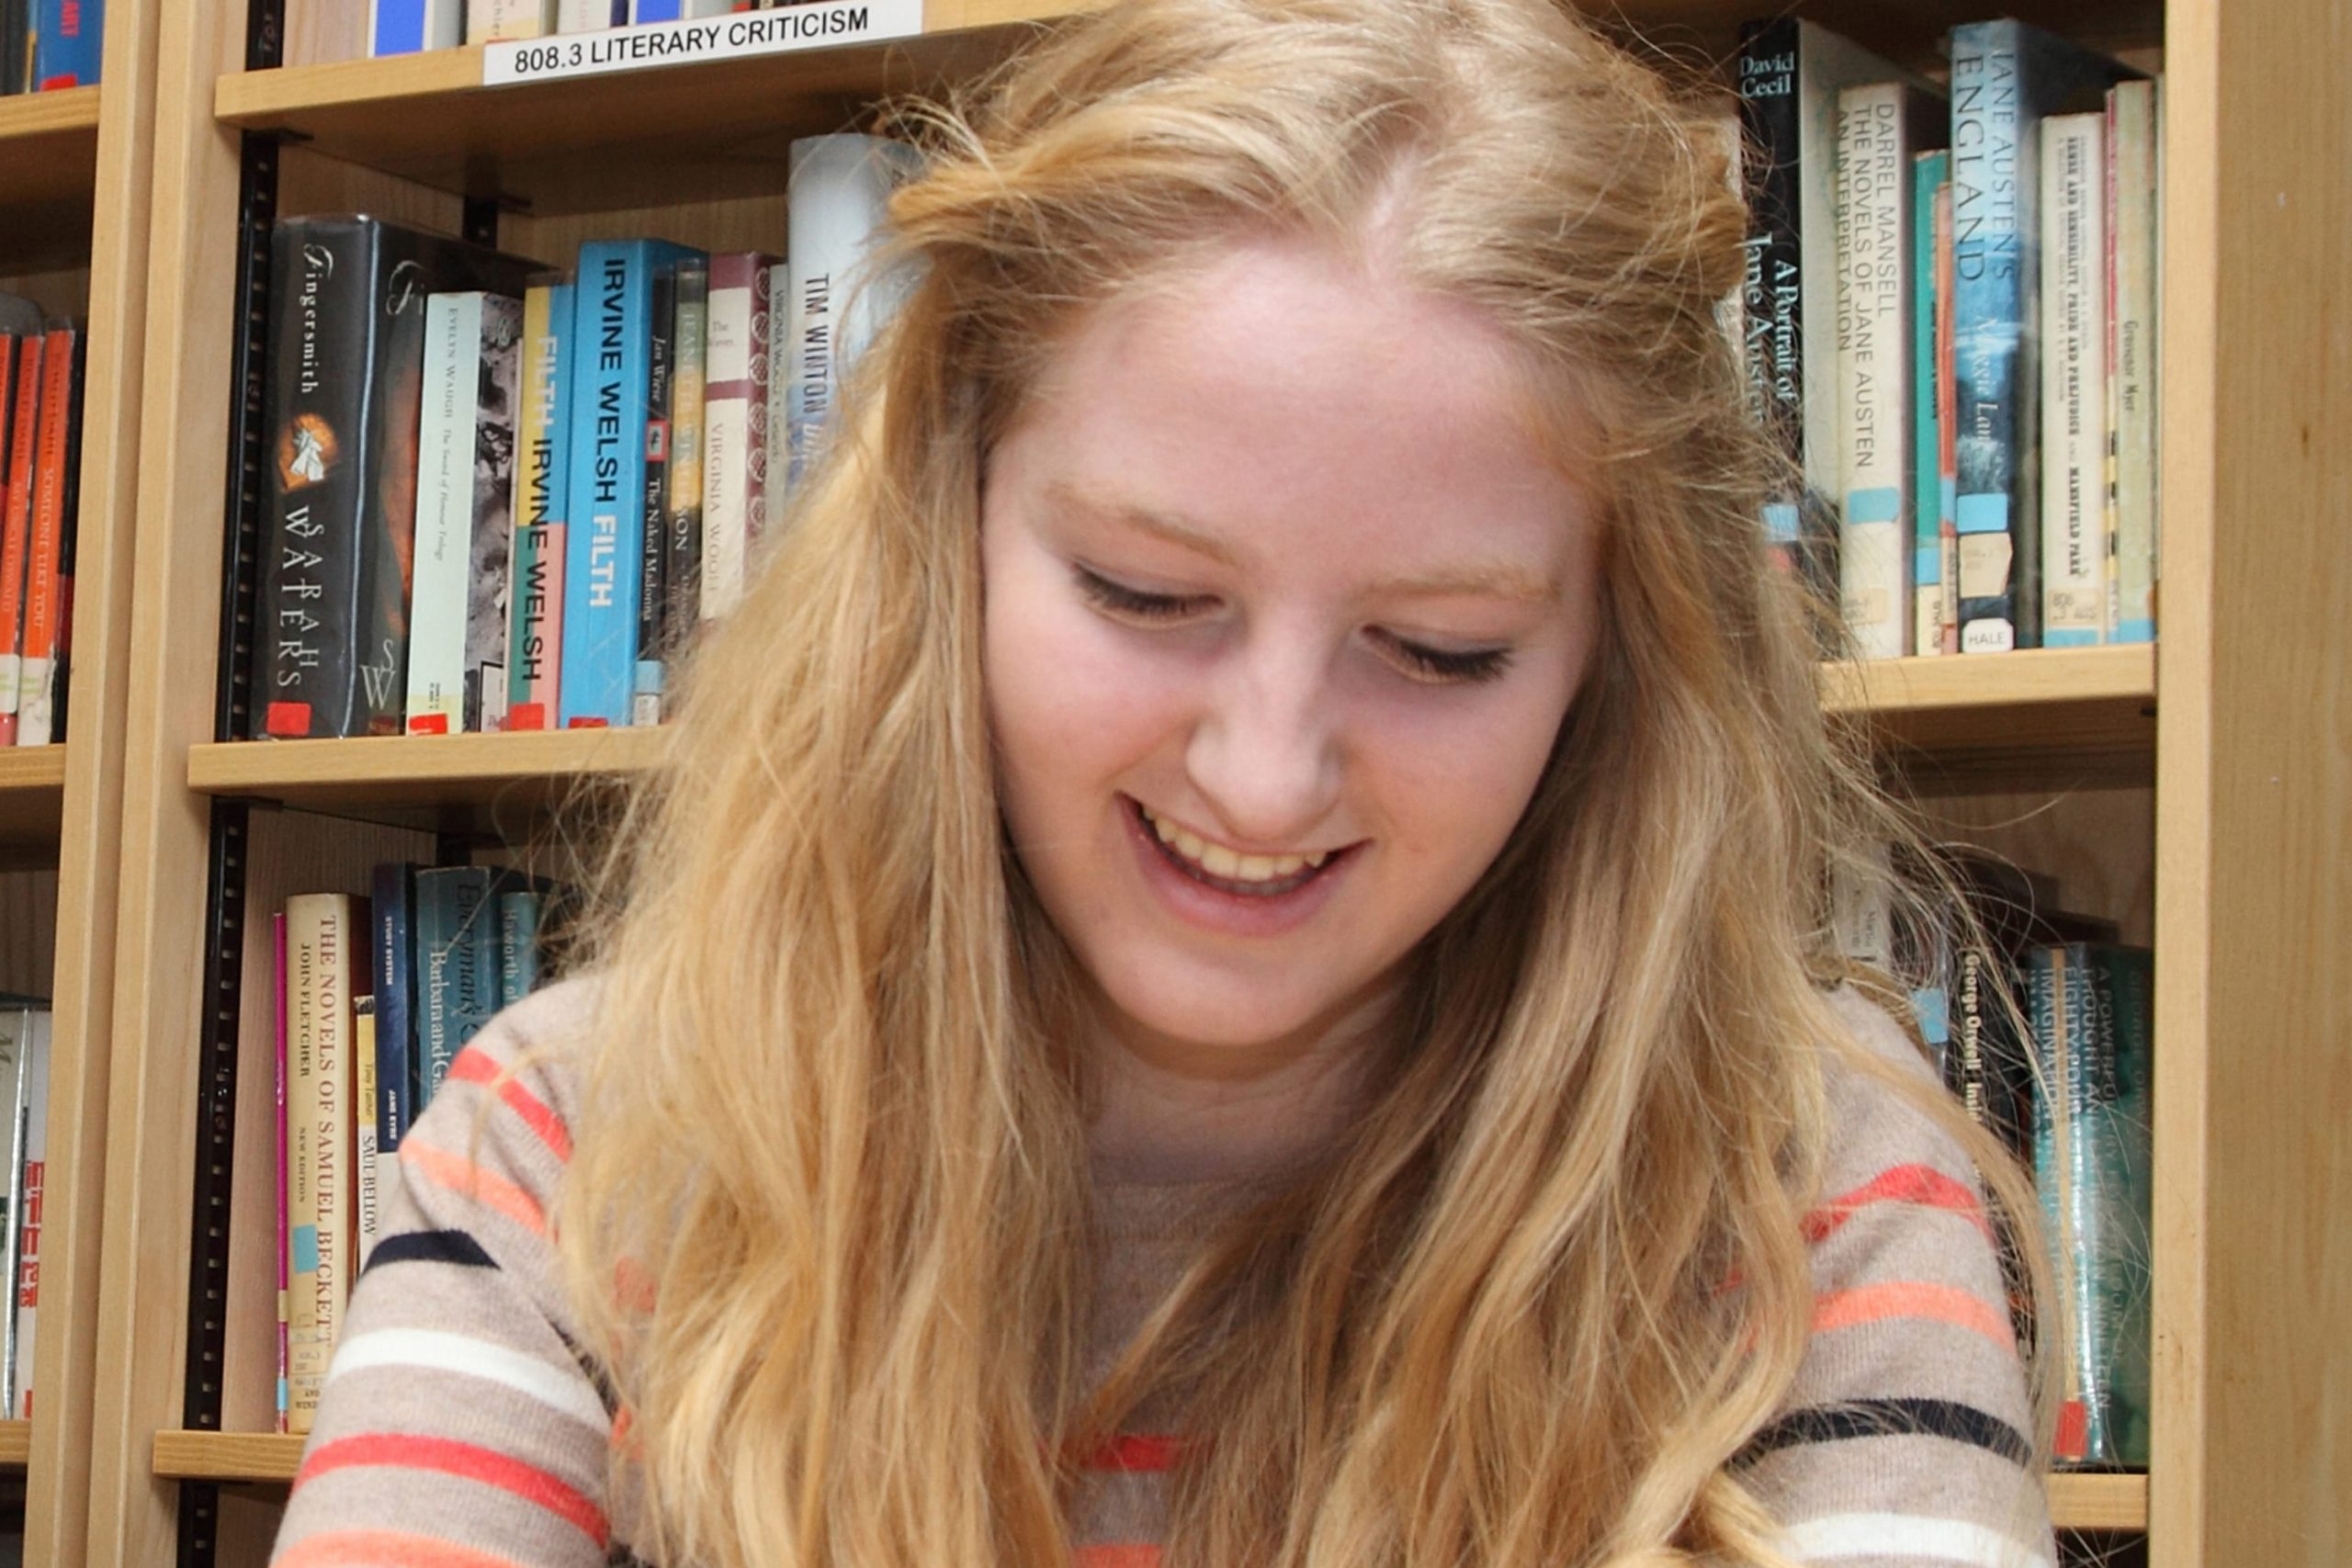 Sixth Form student working in library